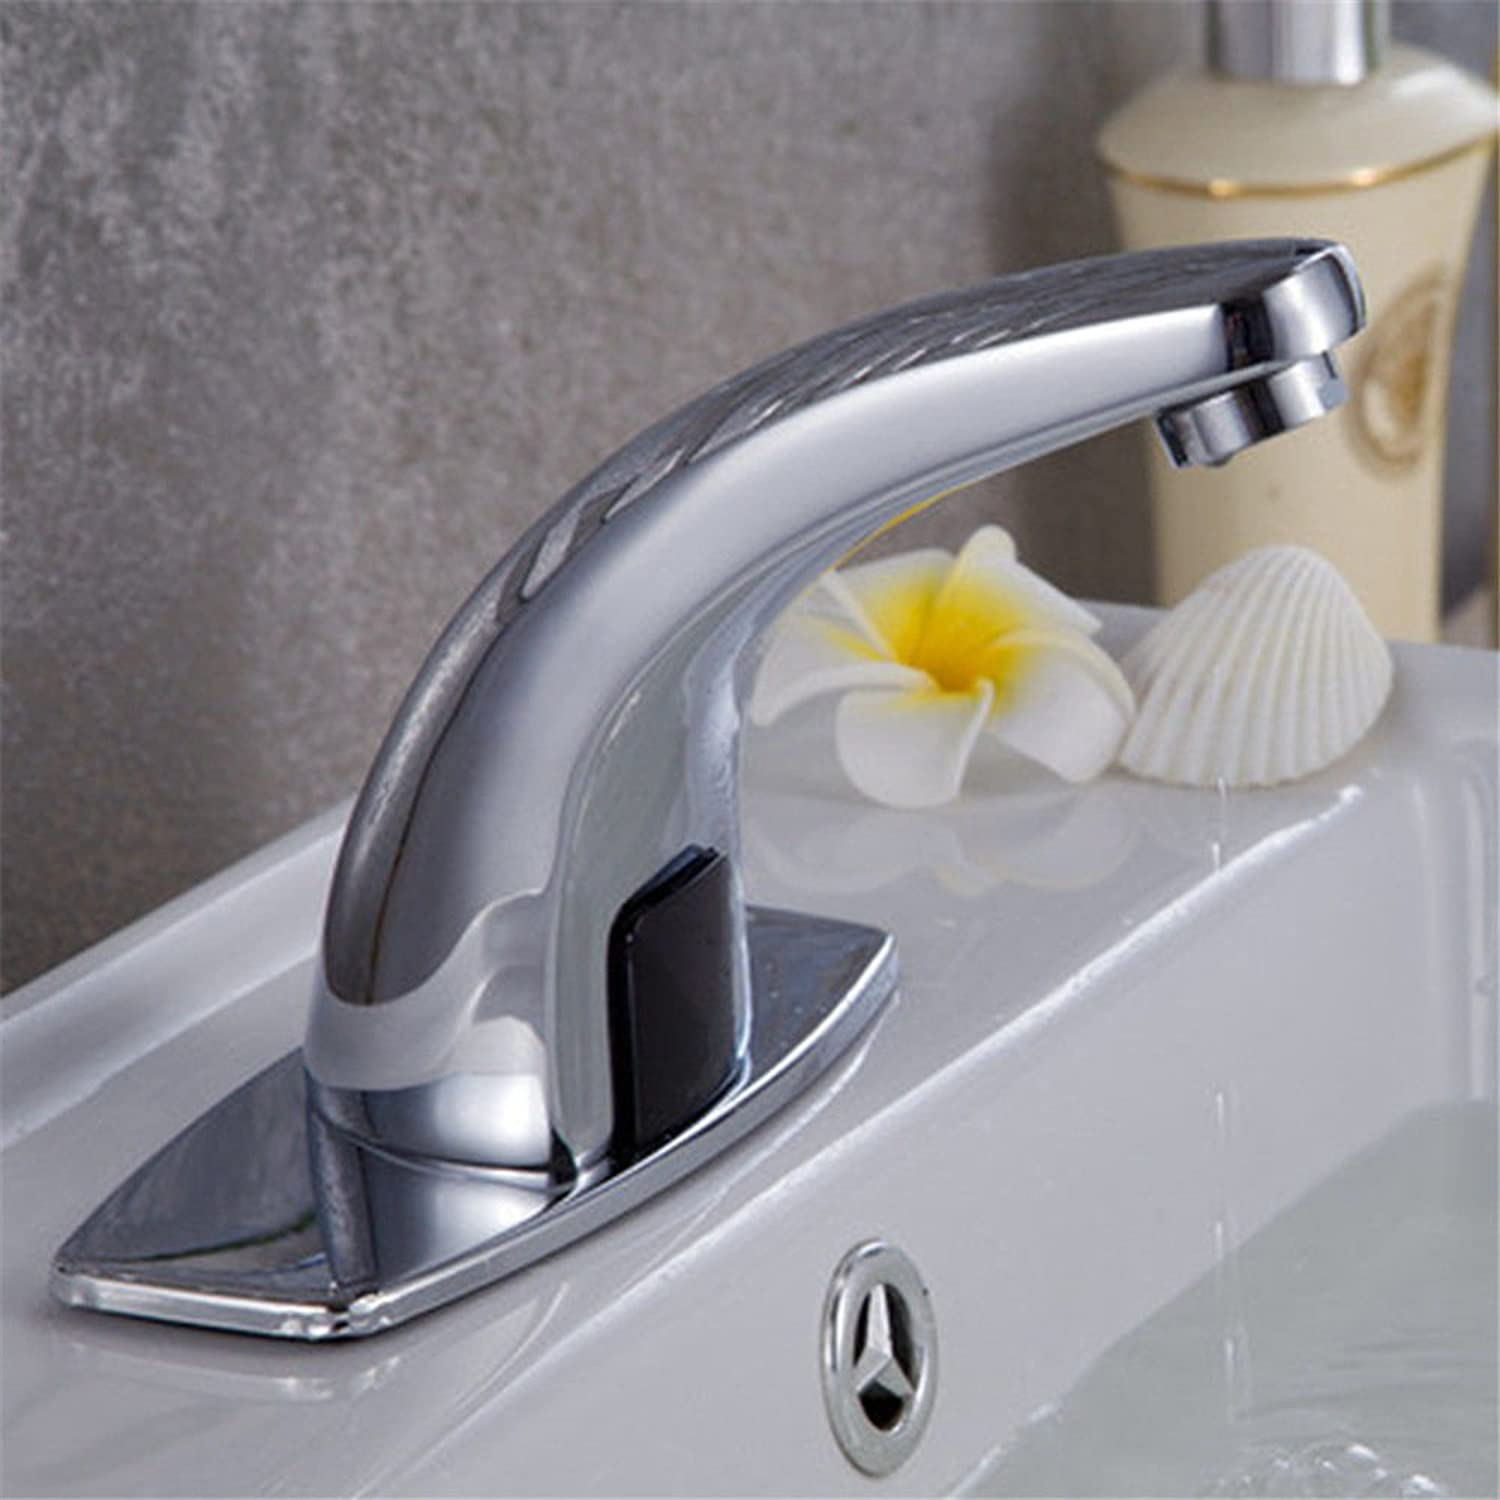 NewBorn Faucet Kitchen Or Bathroom Sink Mixer Tap Antique Water Tap Full Copper Hot And Cold Basin Tap On The Tub Water Tap B